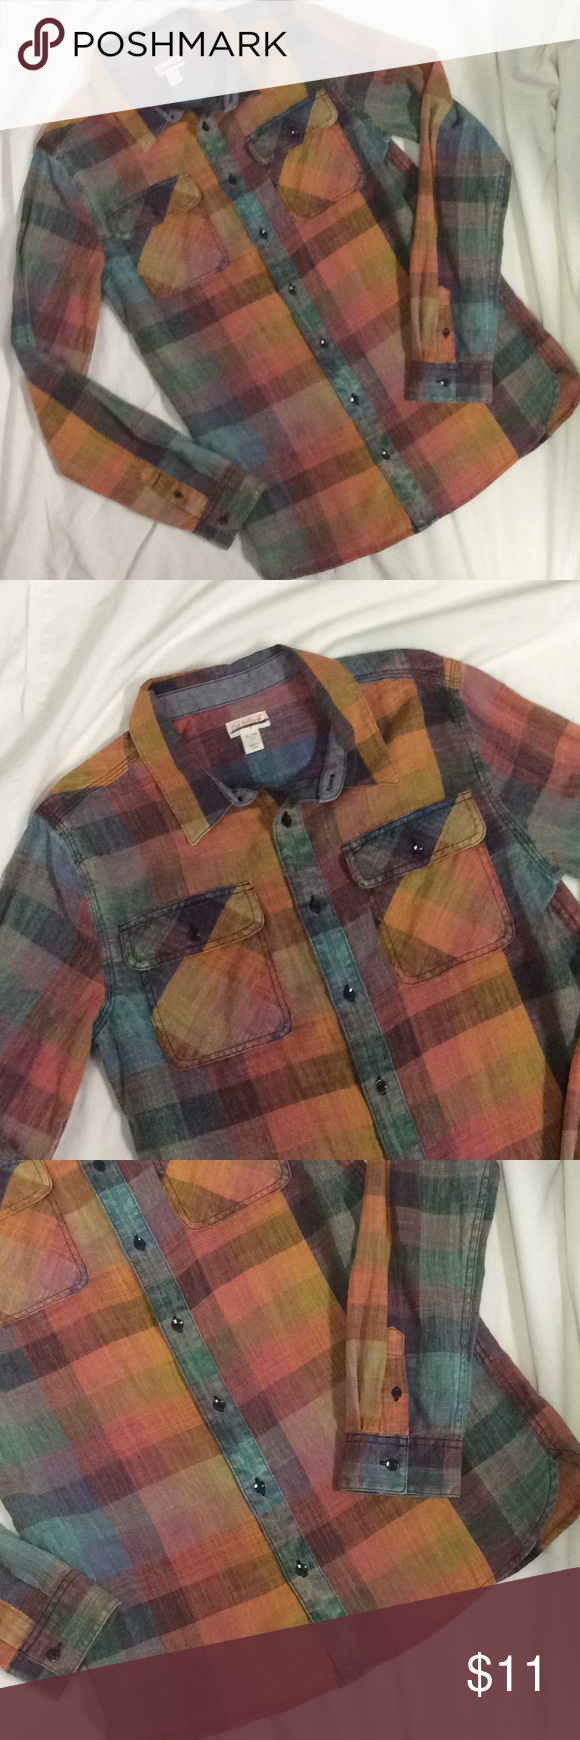 """NWOT Cat & Jack girls youth XL tunic top 😻 New without tags and in perfect condition, cute multicolored checkered button down tunic top with long sleeves and 2 front chest pockets. Armpit to armpit 19.5"""", length 28"""". Cat & Jack Shirts & Tops Button Down Shirts"""